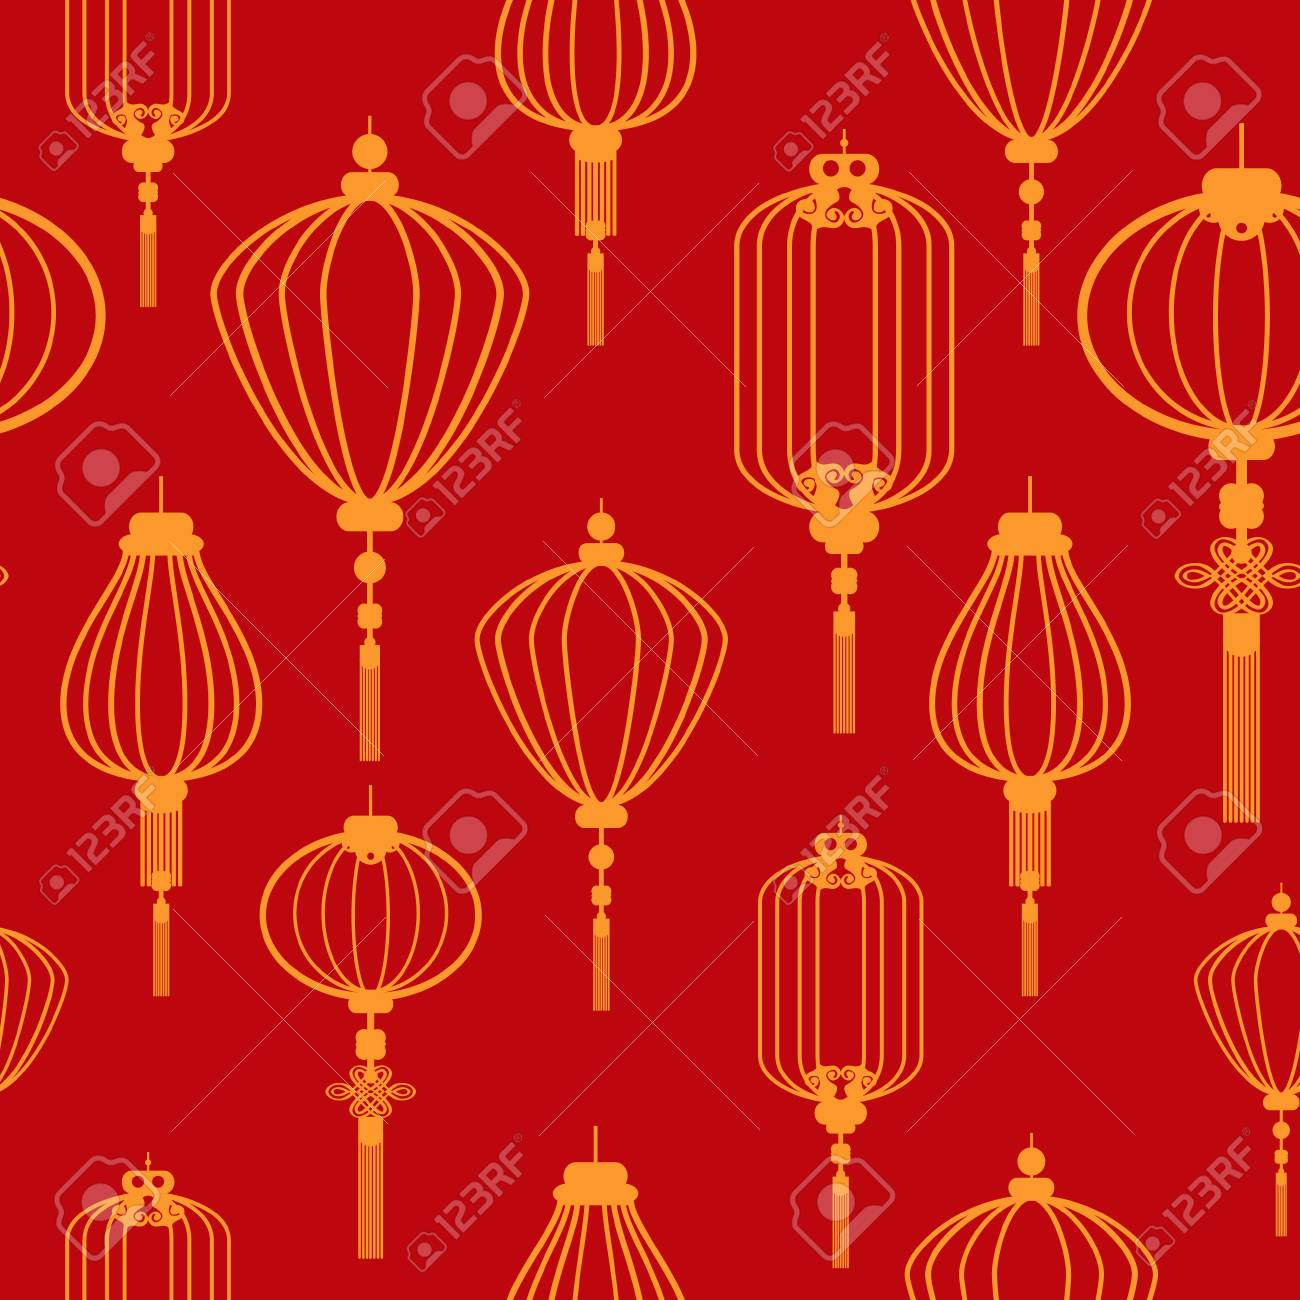 A vector illustration of Chinese new year wallpaper seamless..